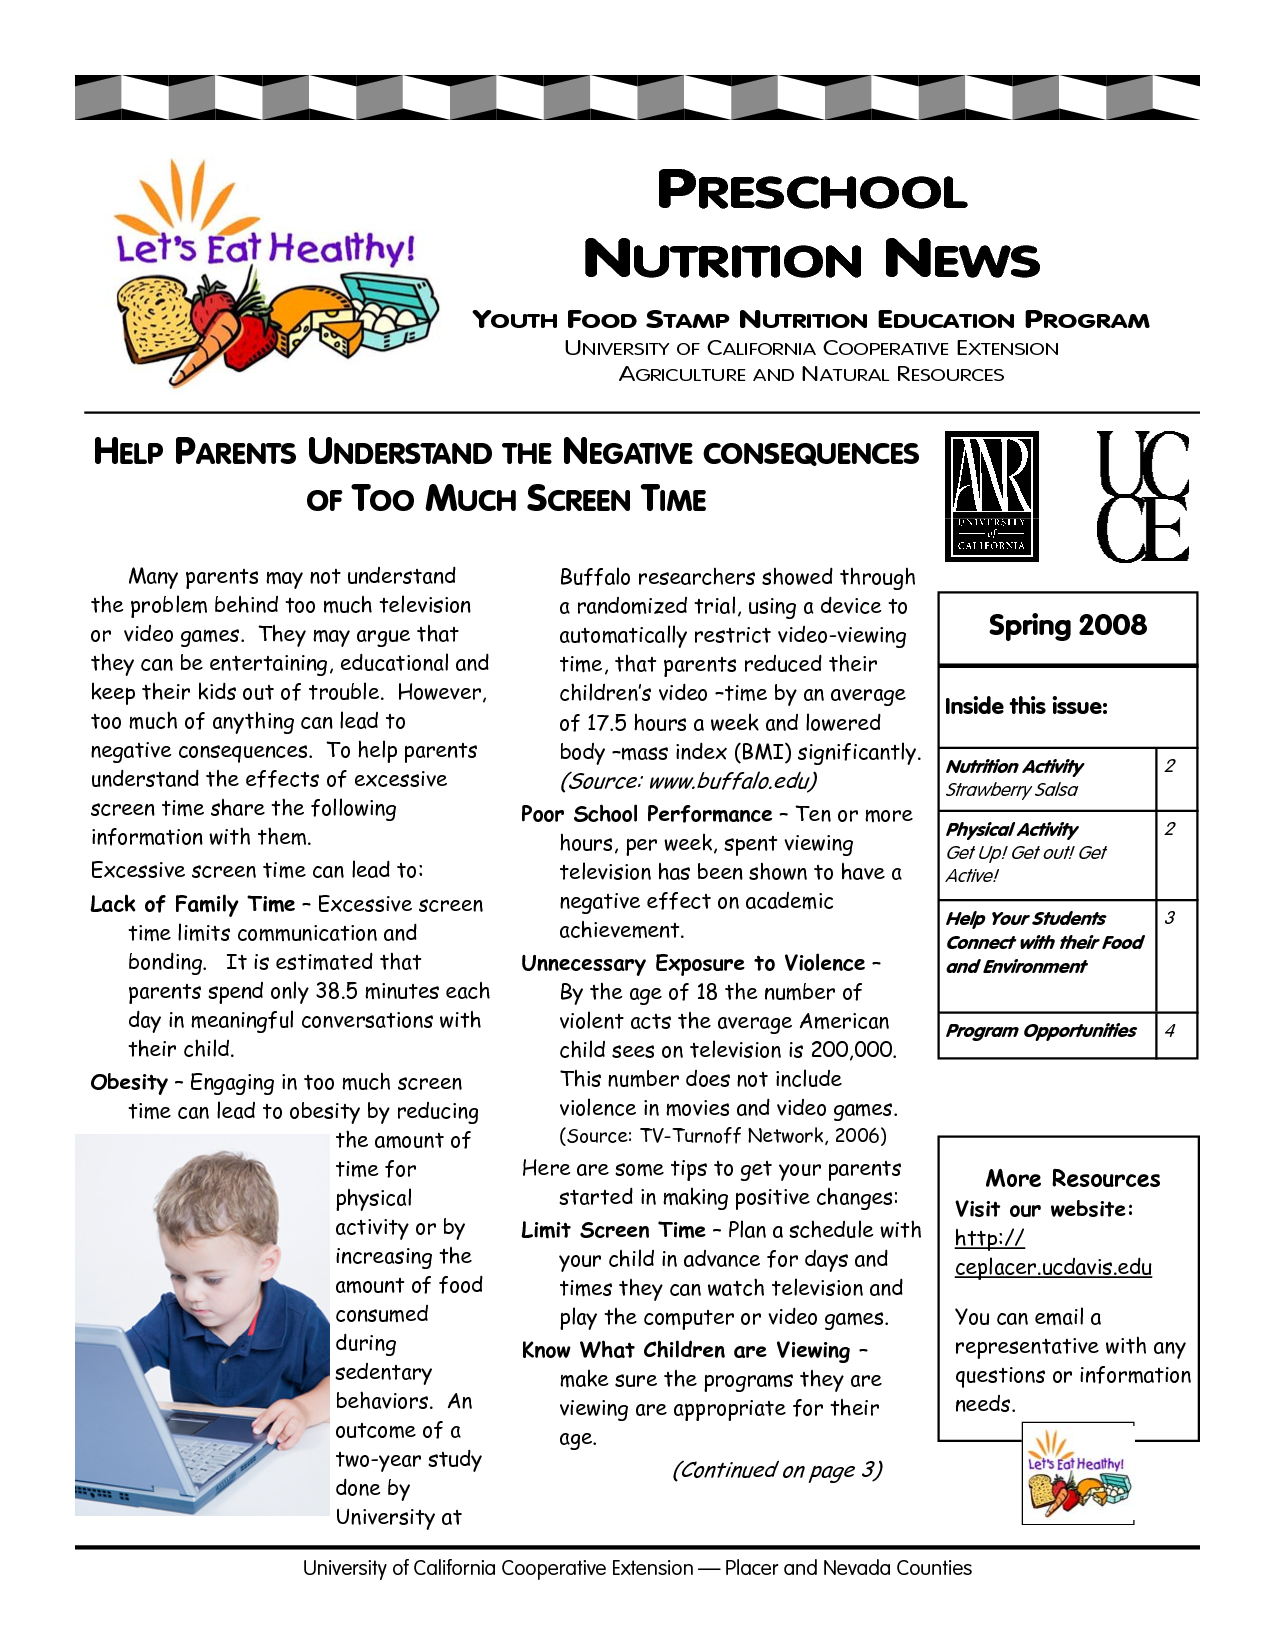 9f856349b5dab0f2cfce1a373564f2ae Sample Daycare December Newsletter Templates on november monthly, for march home, creative arts, for parents summer, march month, for august, for december print out, about holidays off, article examples for,